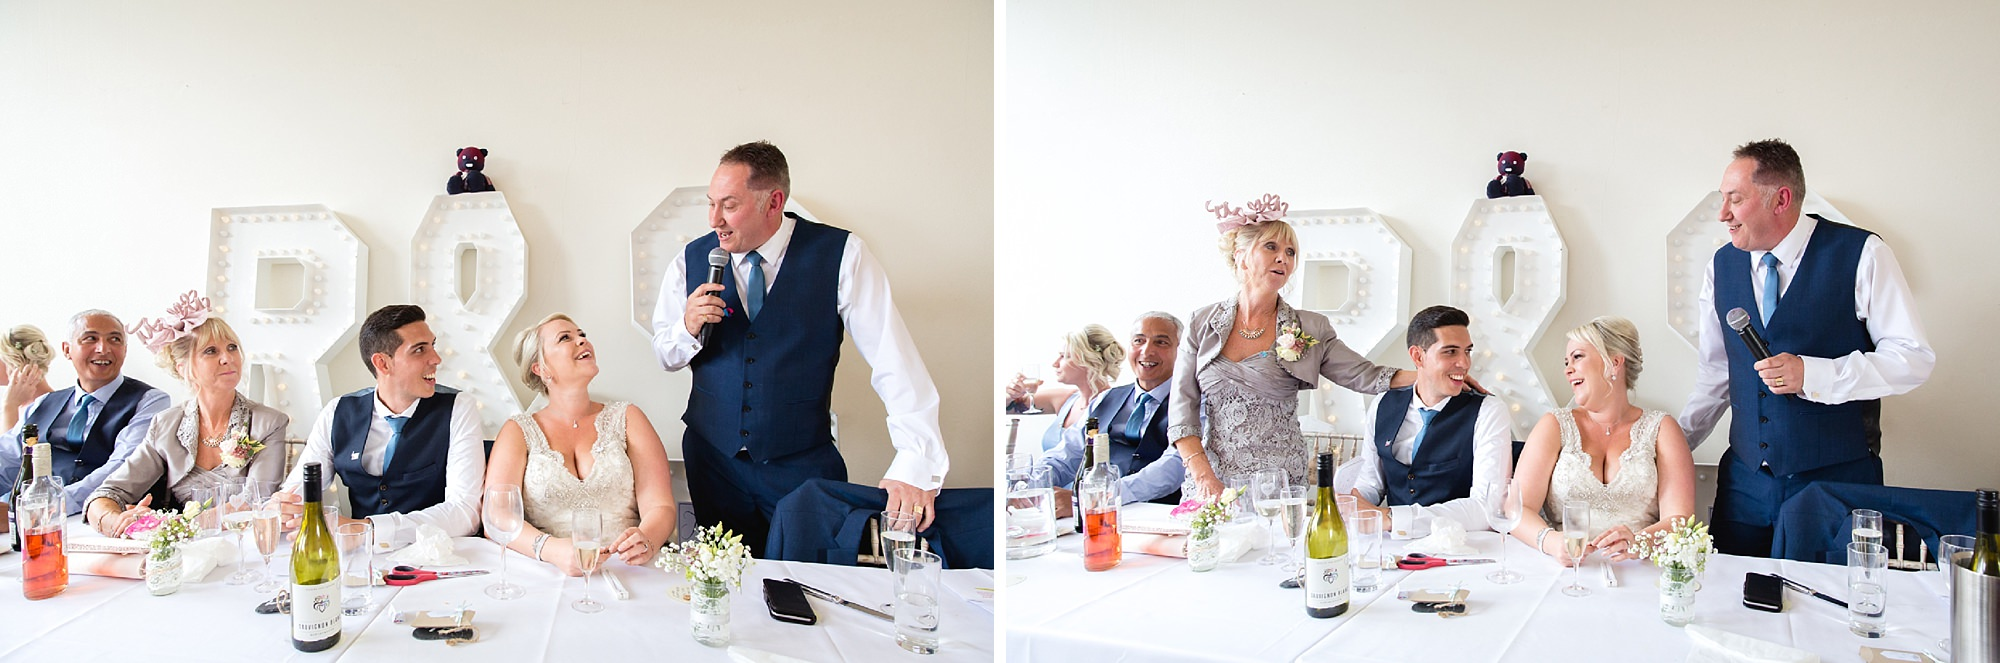 Bignor Park wedding photography singing during speeches